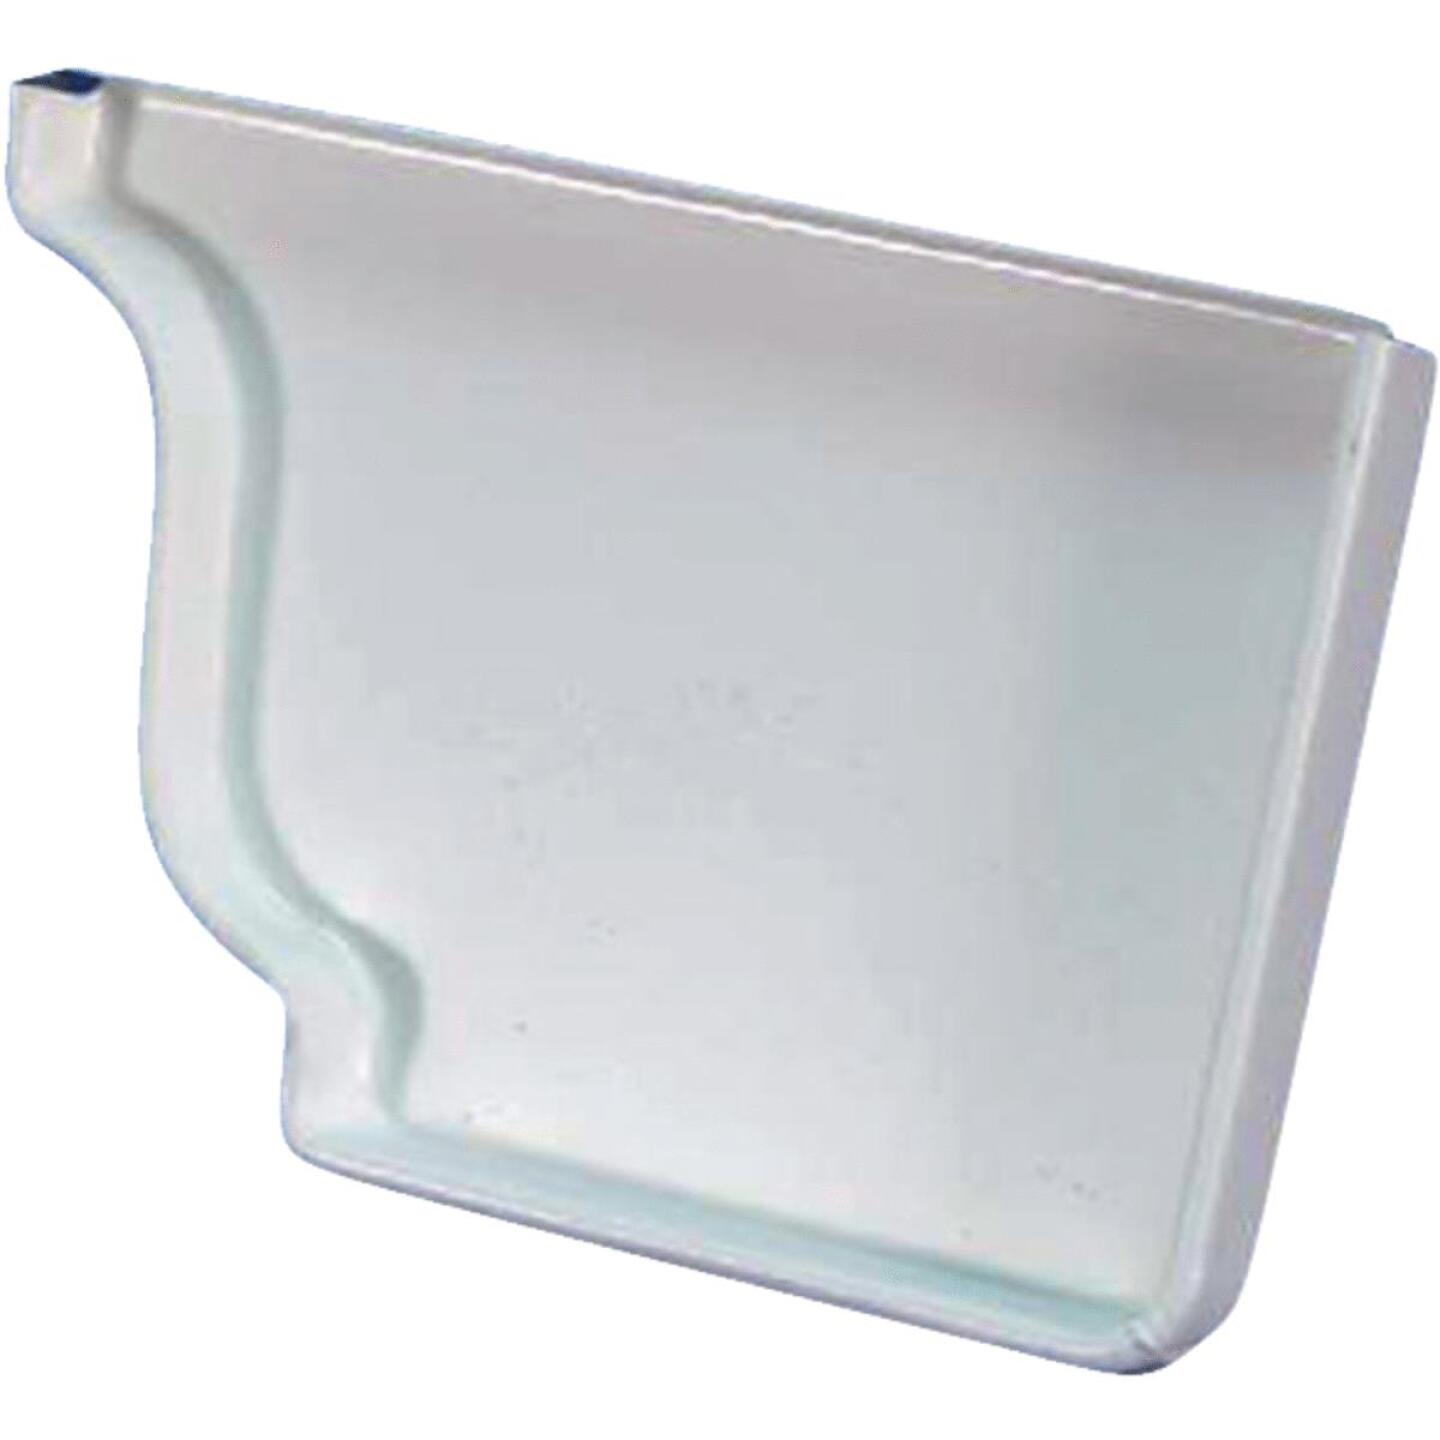 Spectra Metals 5 In. Aluminum White Right Gutter End Cap Image 1